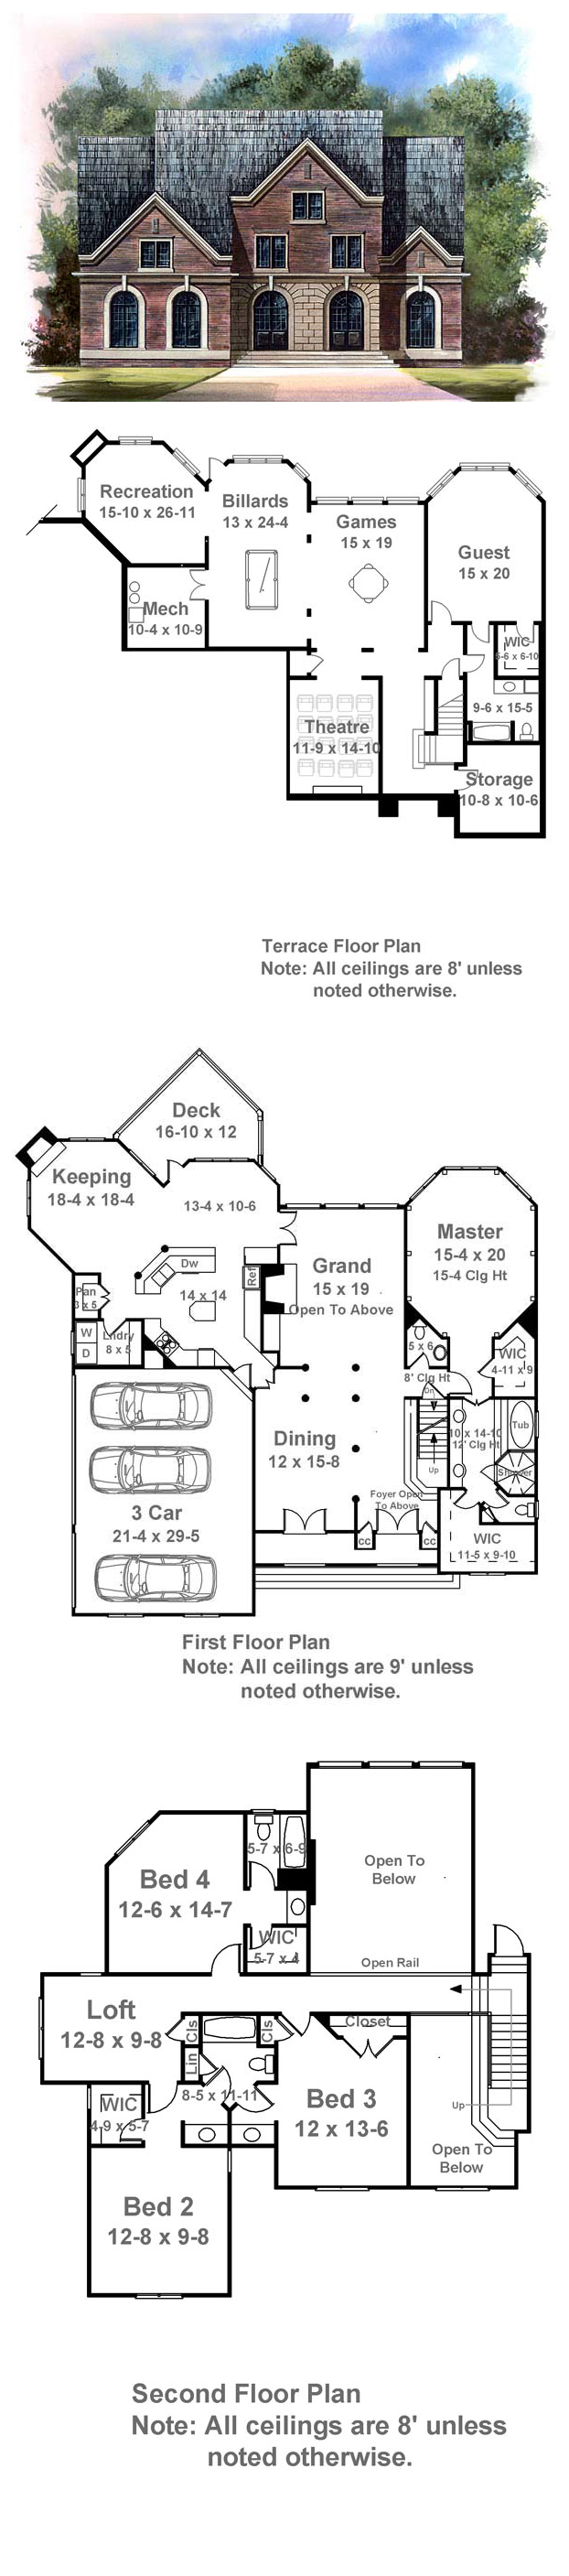 House Plan 72101 | Total living area: 3128 sq ft, 4 bedrooms & 3.5 bathrooms.